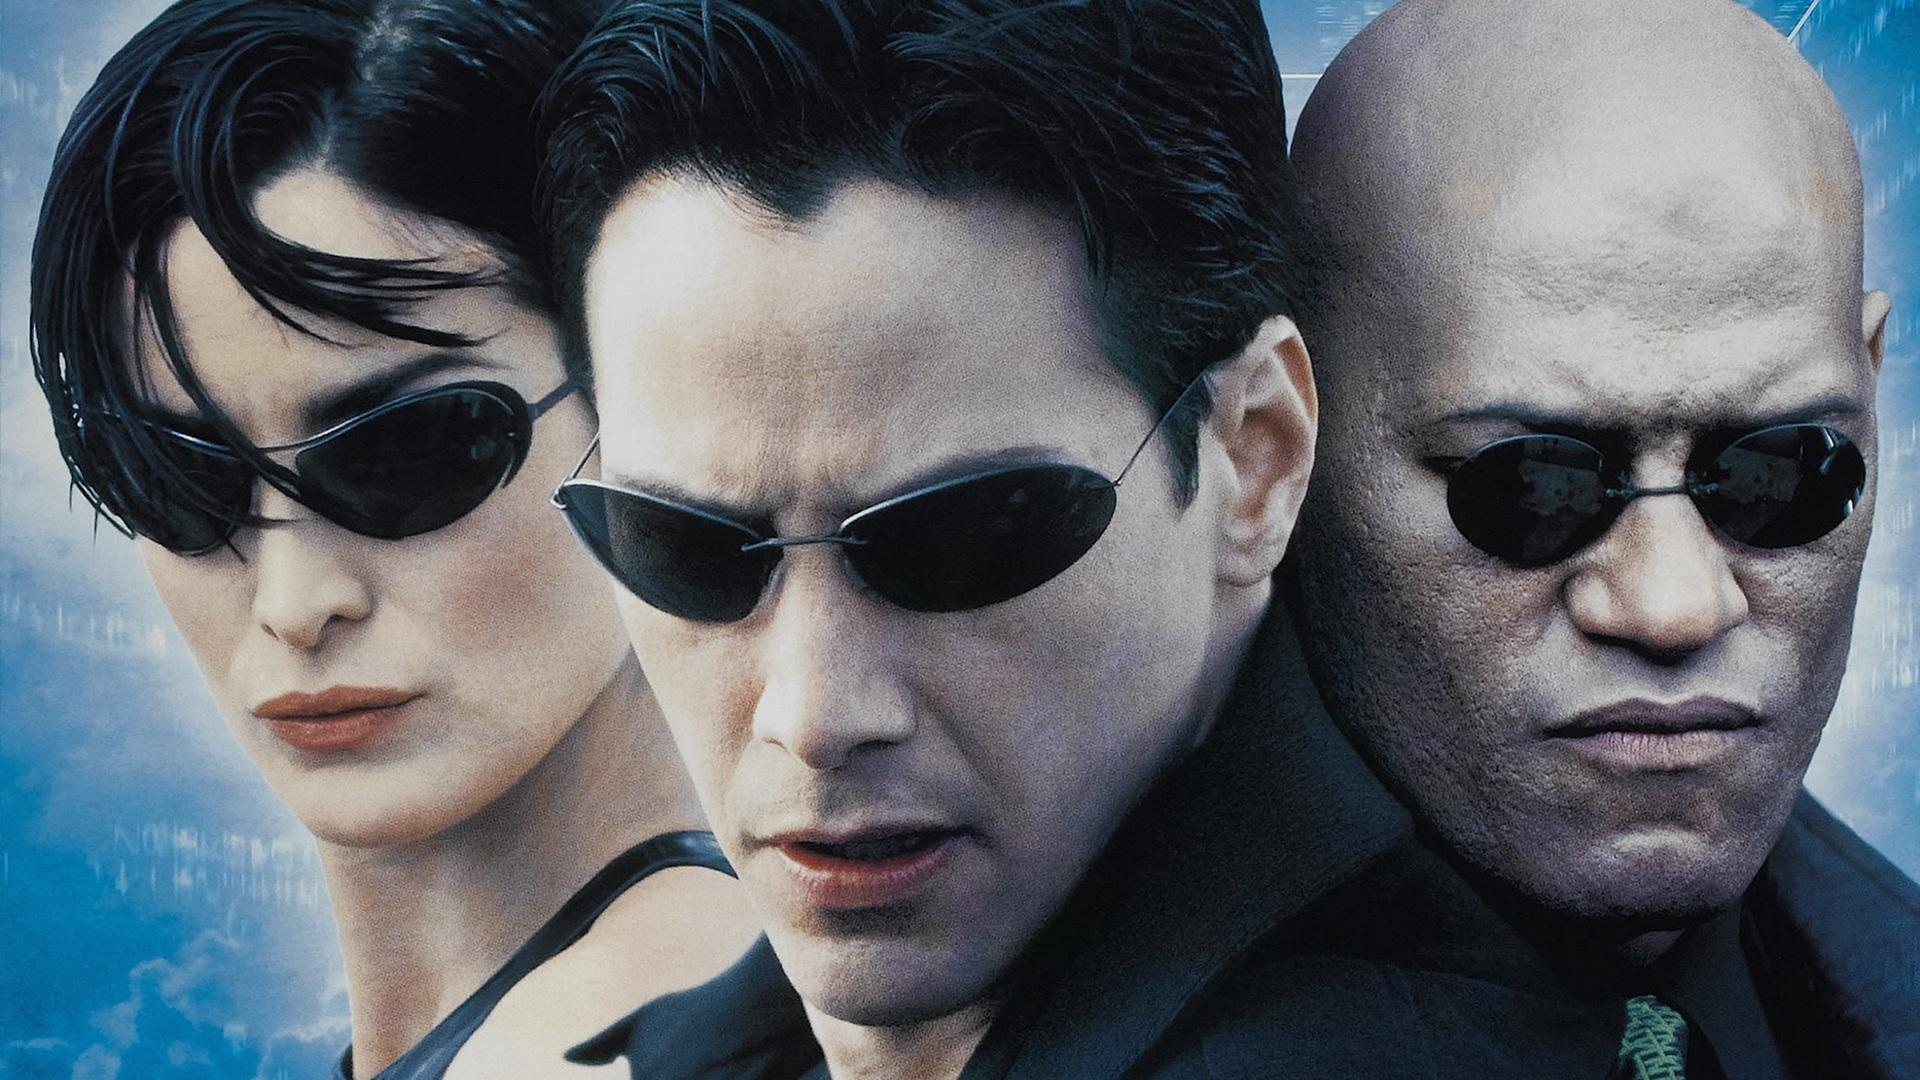 matrix movie characters